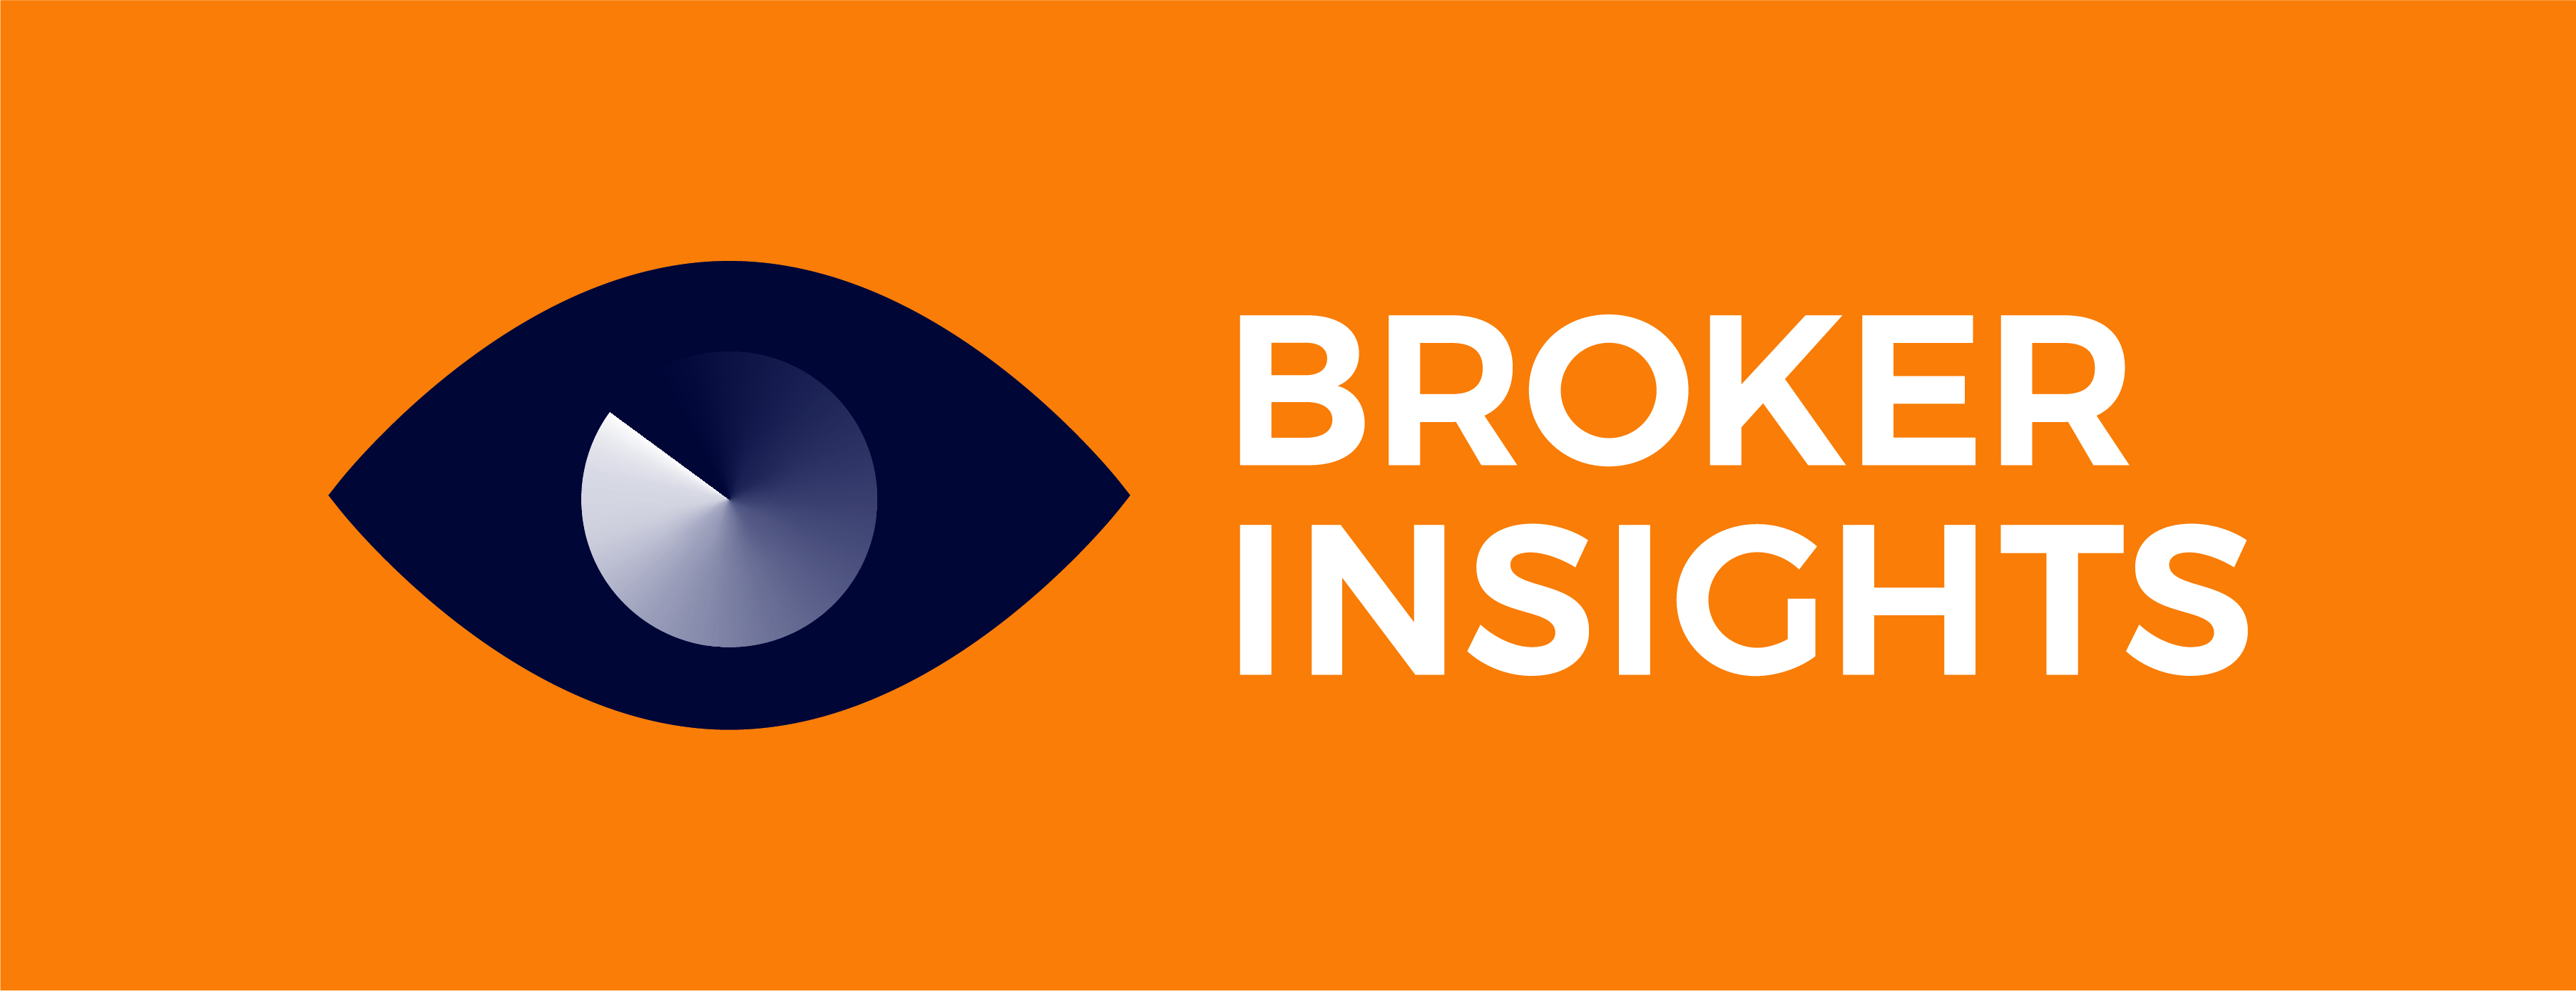 Broker Insights